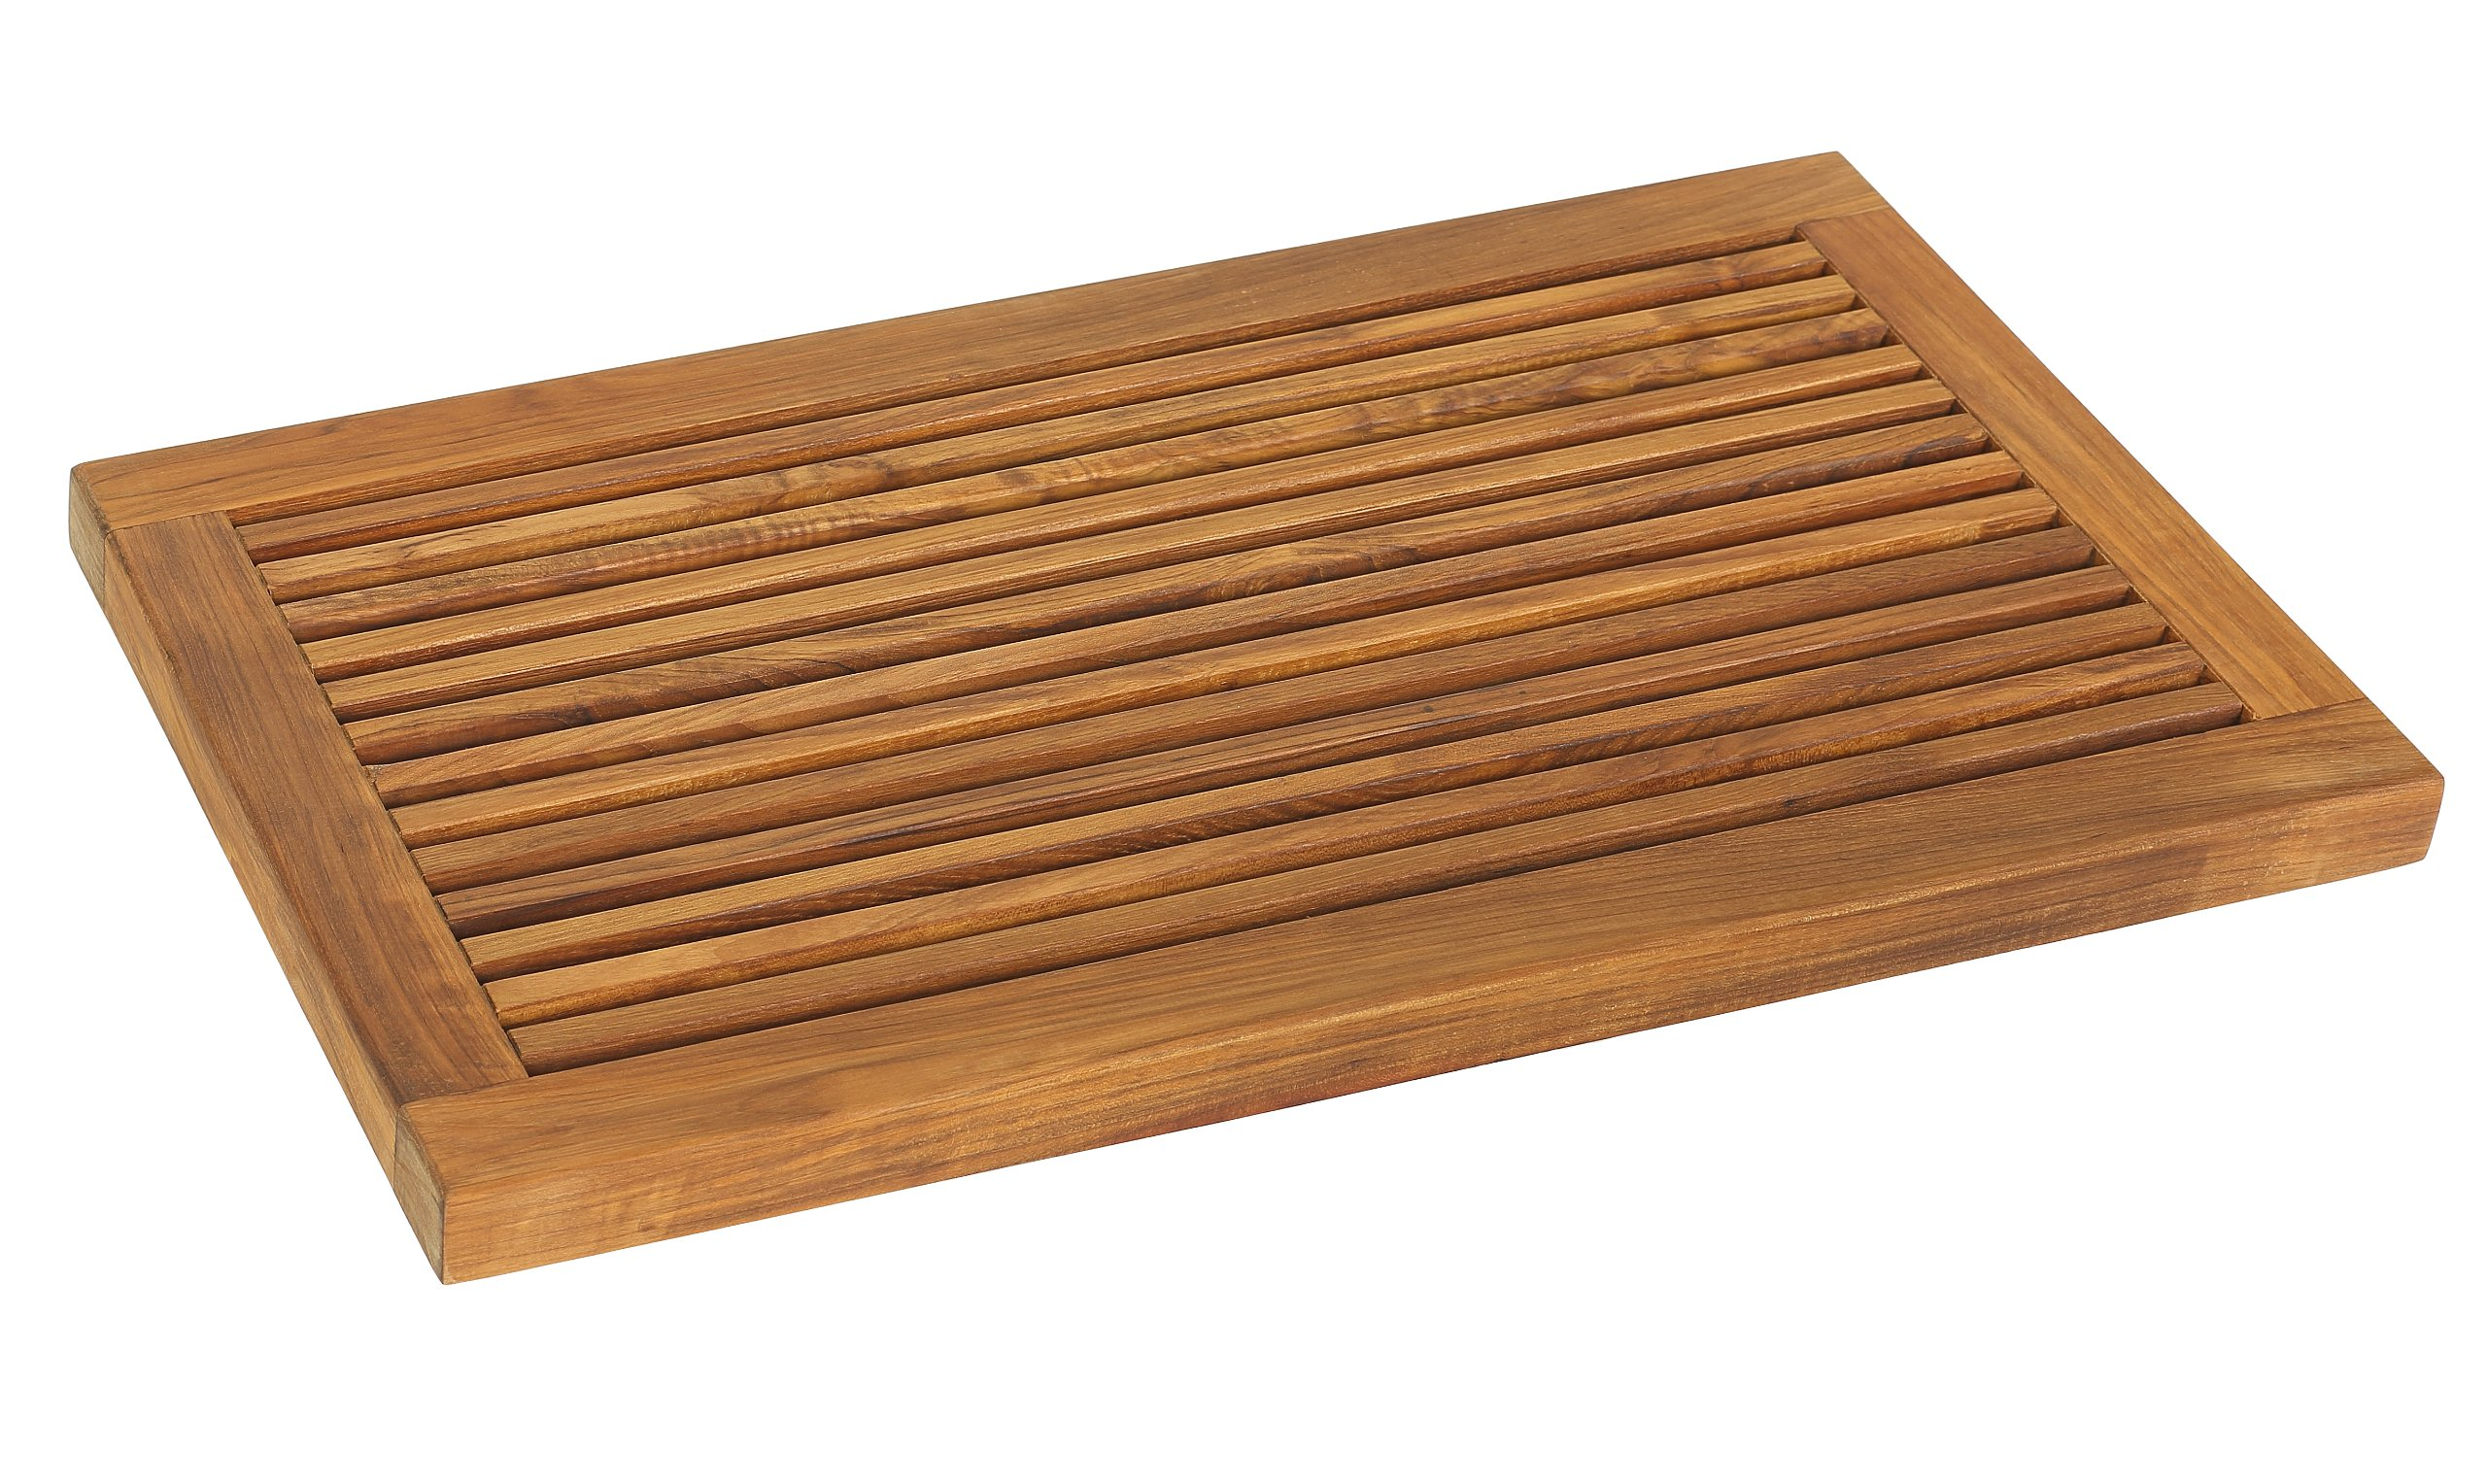 Bare Decor Dasha Spa Shower or Door Mat, 31.5 by 17.75-Inch, Solid Teak Wood and Oiled Finish